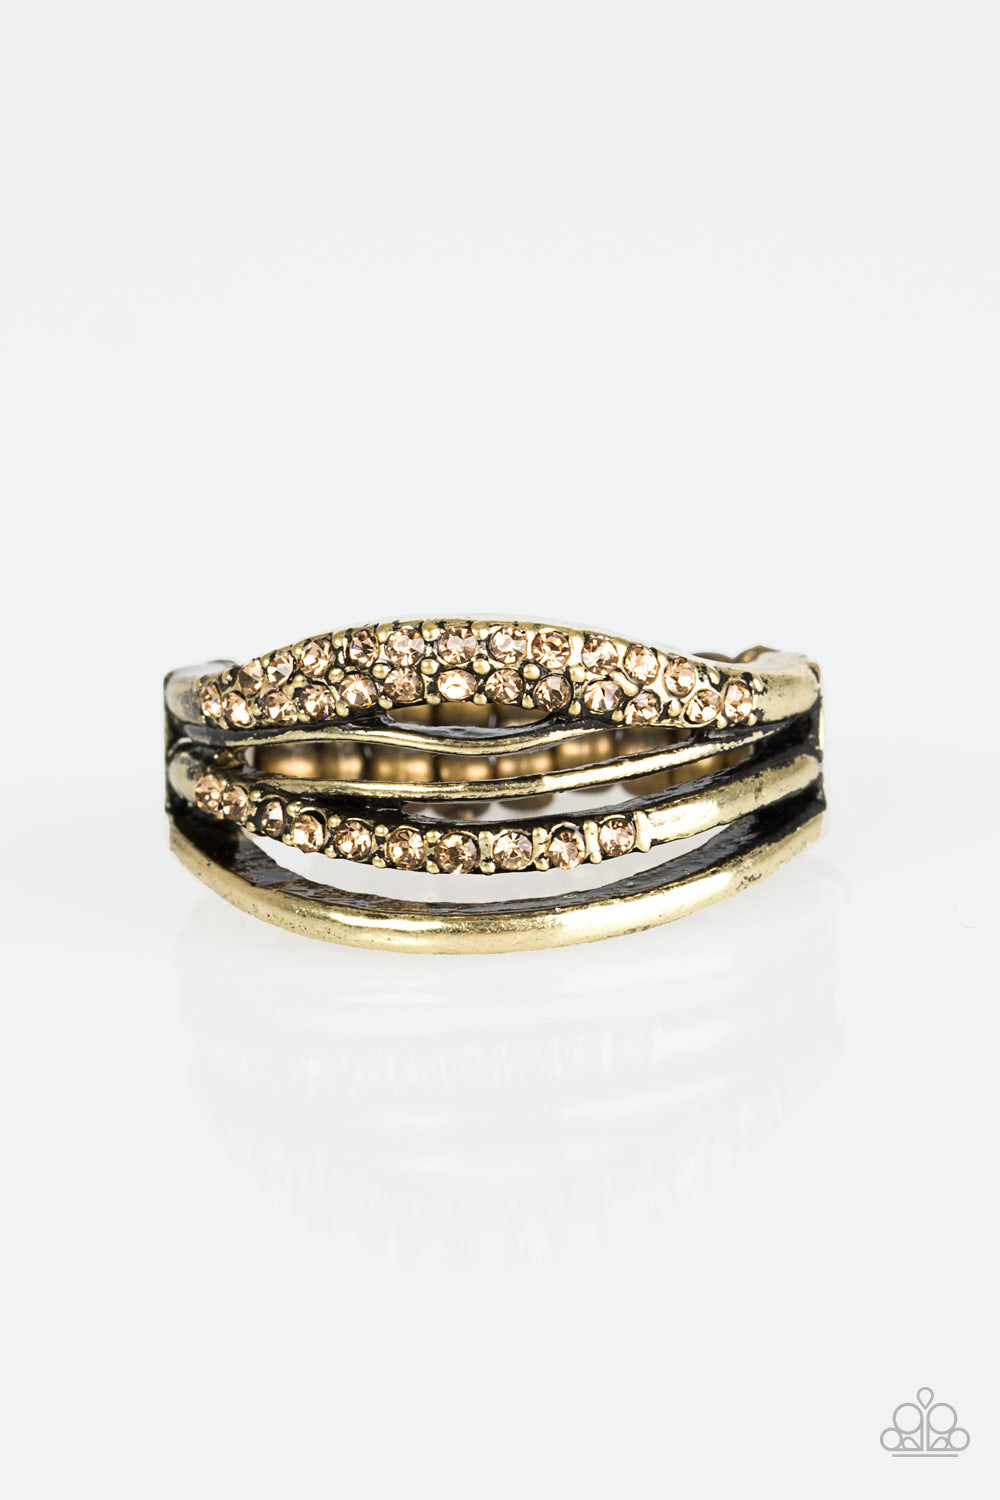 Paparazzi Accessories - Bank On It - Brass Ring - JMJ Jewelry Collection